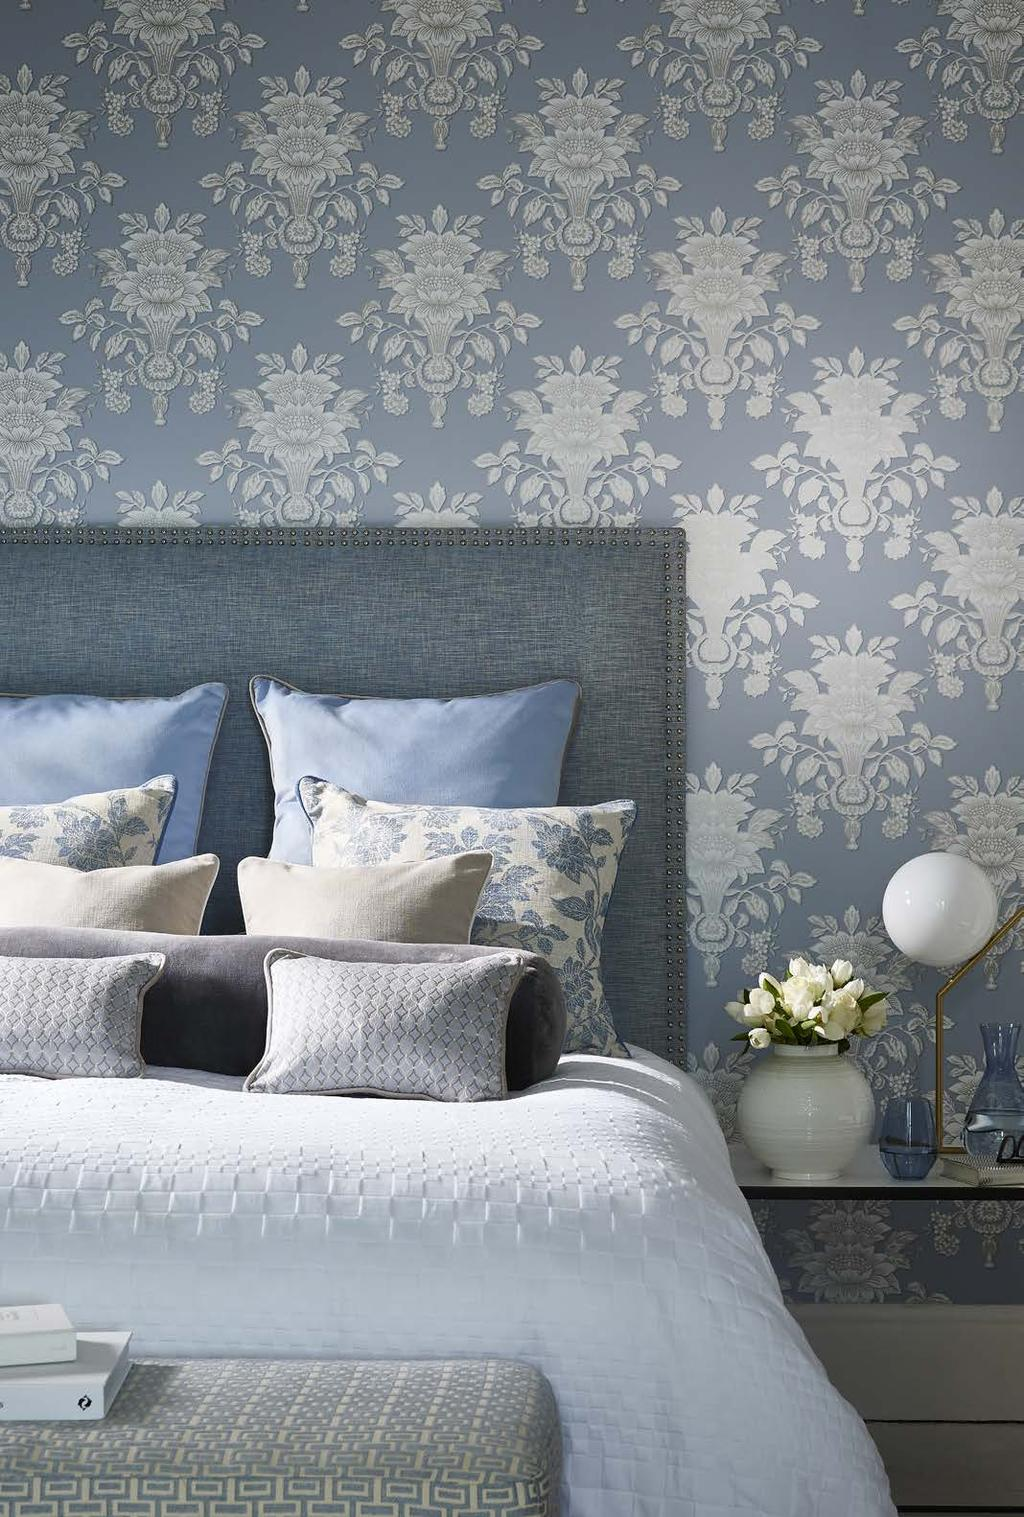 THE FUTURE OF HERITAGE Blendworth have worked alongside Wedgwood to create a collection of fabrics and wallcoverings inspired by the brand s impressive design archive.